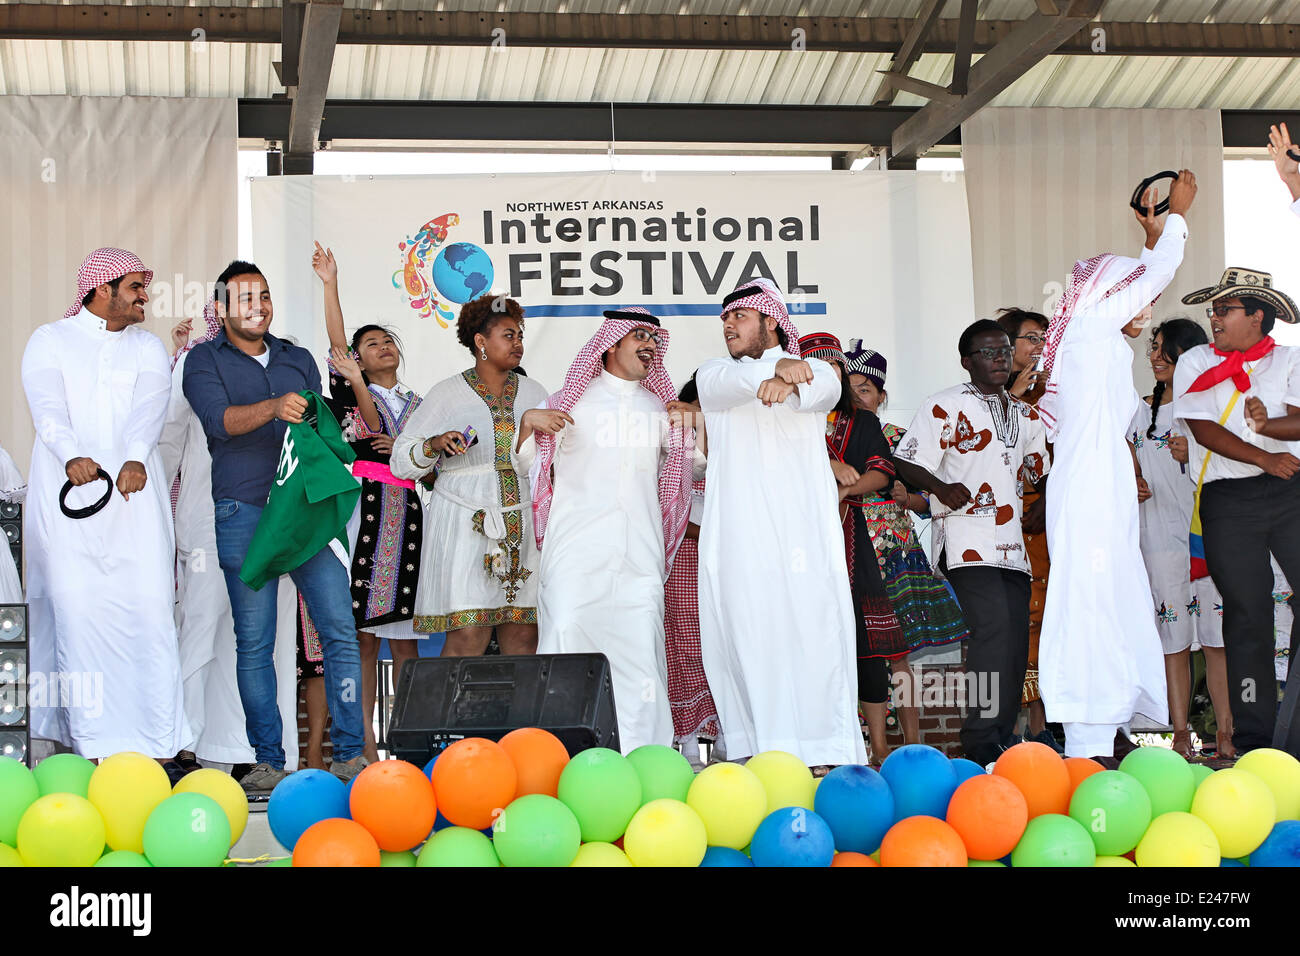 International Festival and Fashion Show participants from Laos, Thailand, Mexico, Africa and Saudi Arabia in Arkansas. - Stock Image